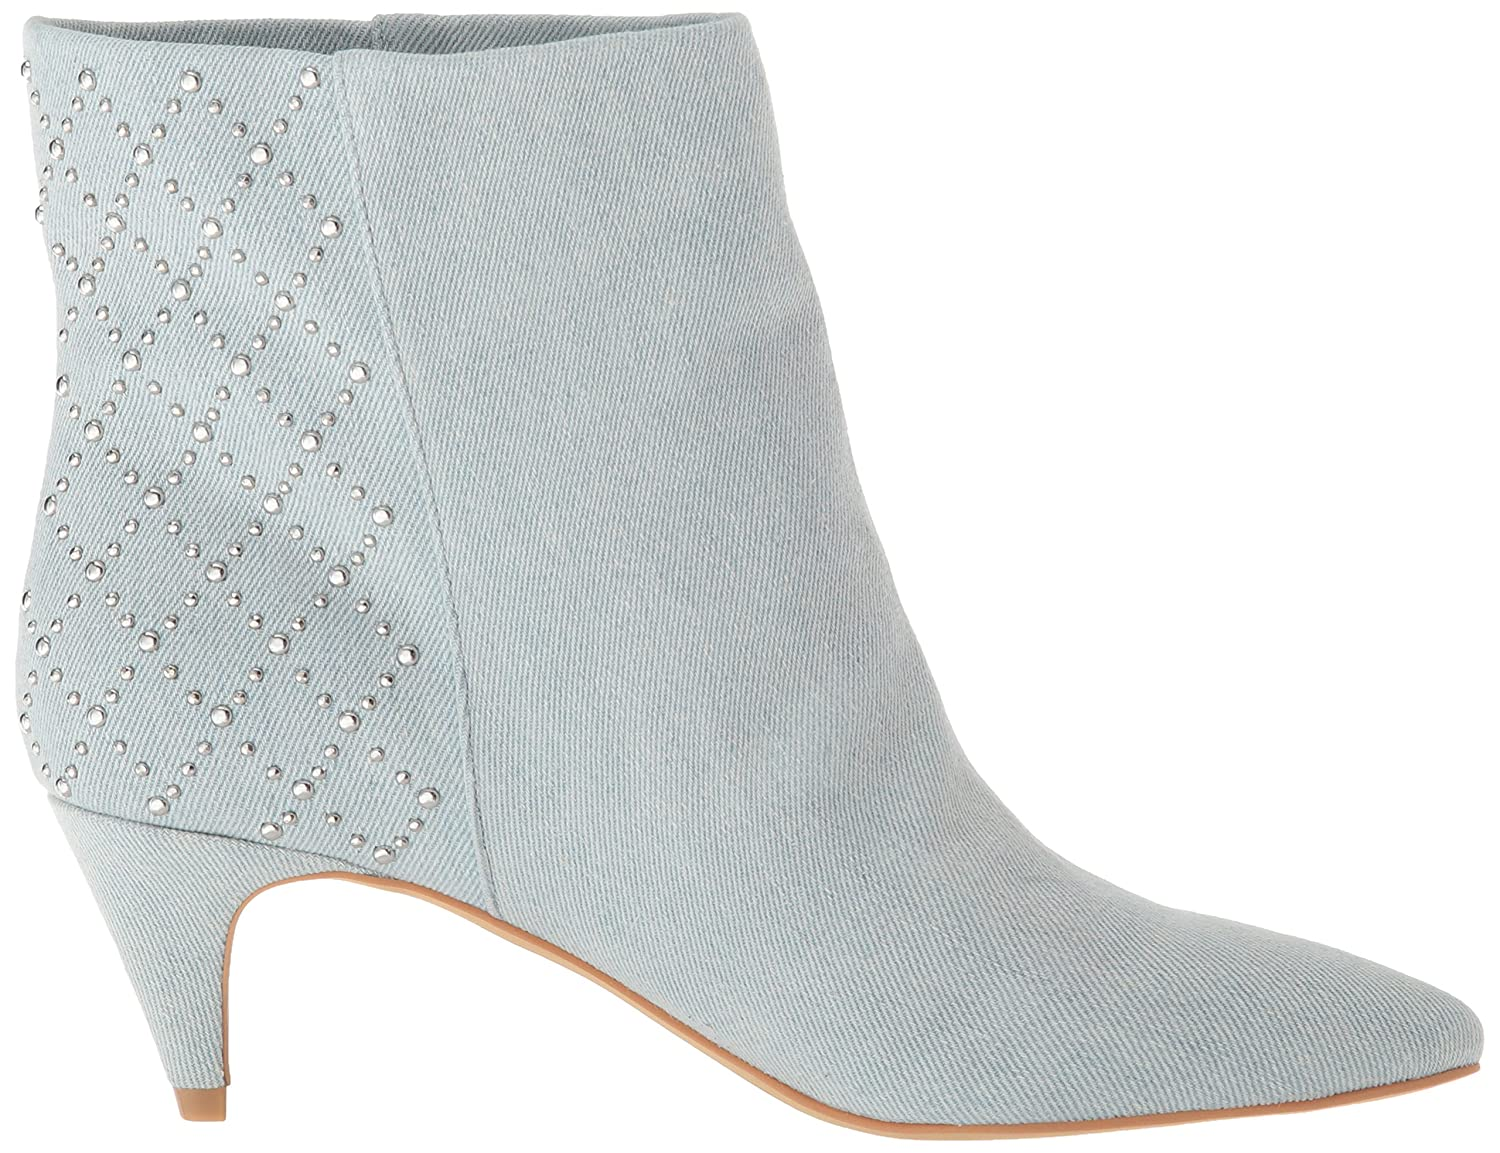 Dolce Vita Women's Dot Ankle Boot Blue B07CD637RF 9 B(M) US|Light Blue Boot Denim b43ba0